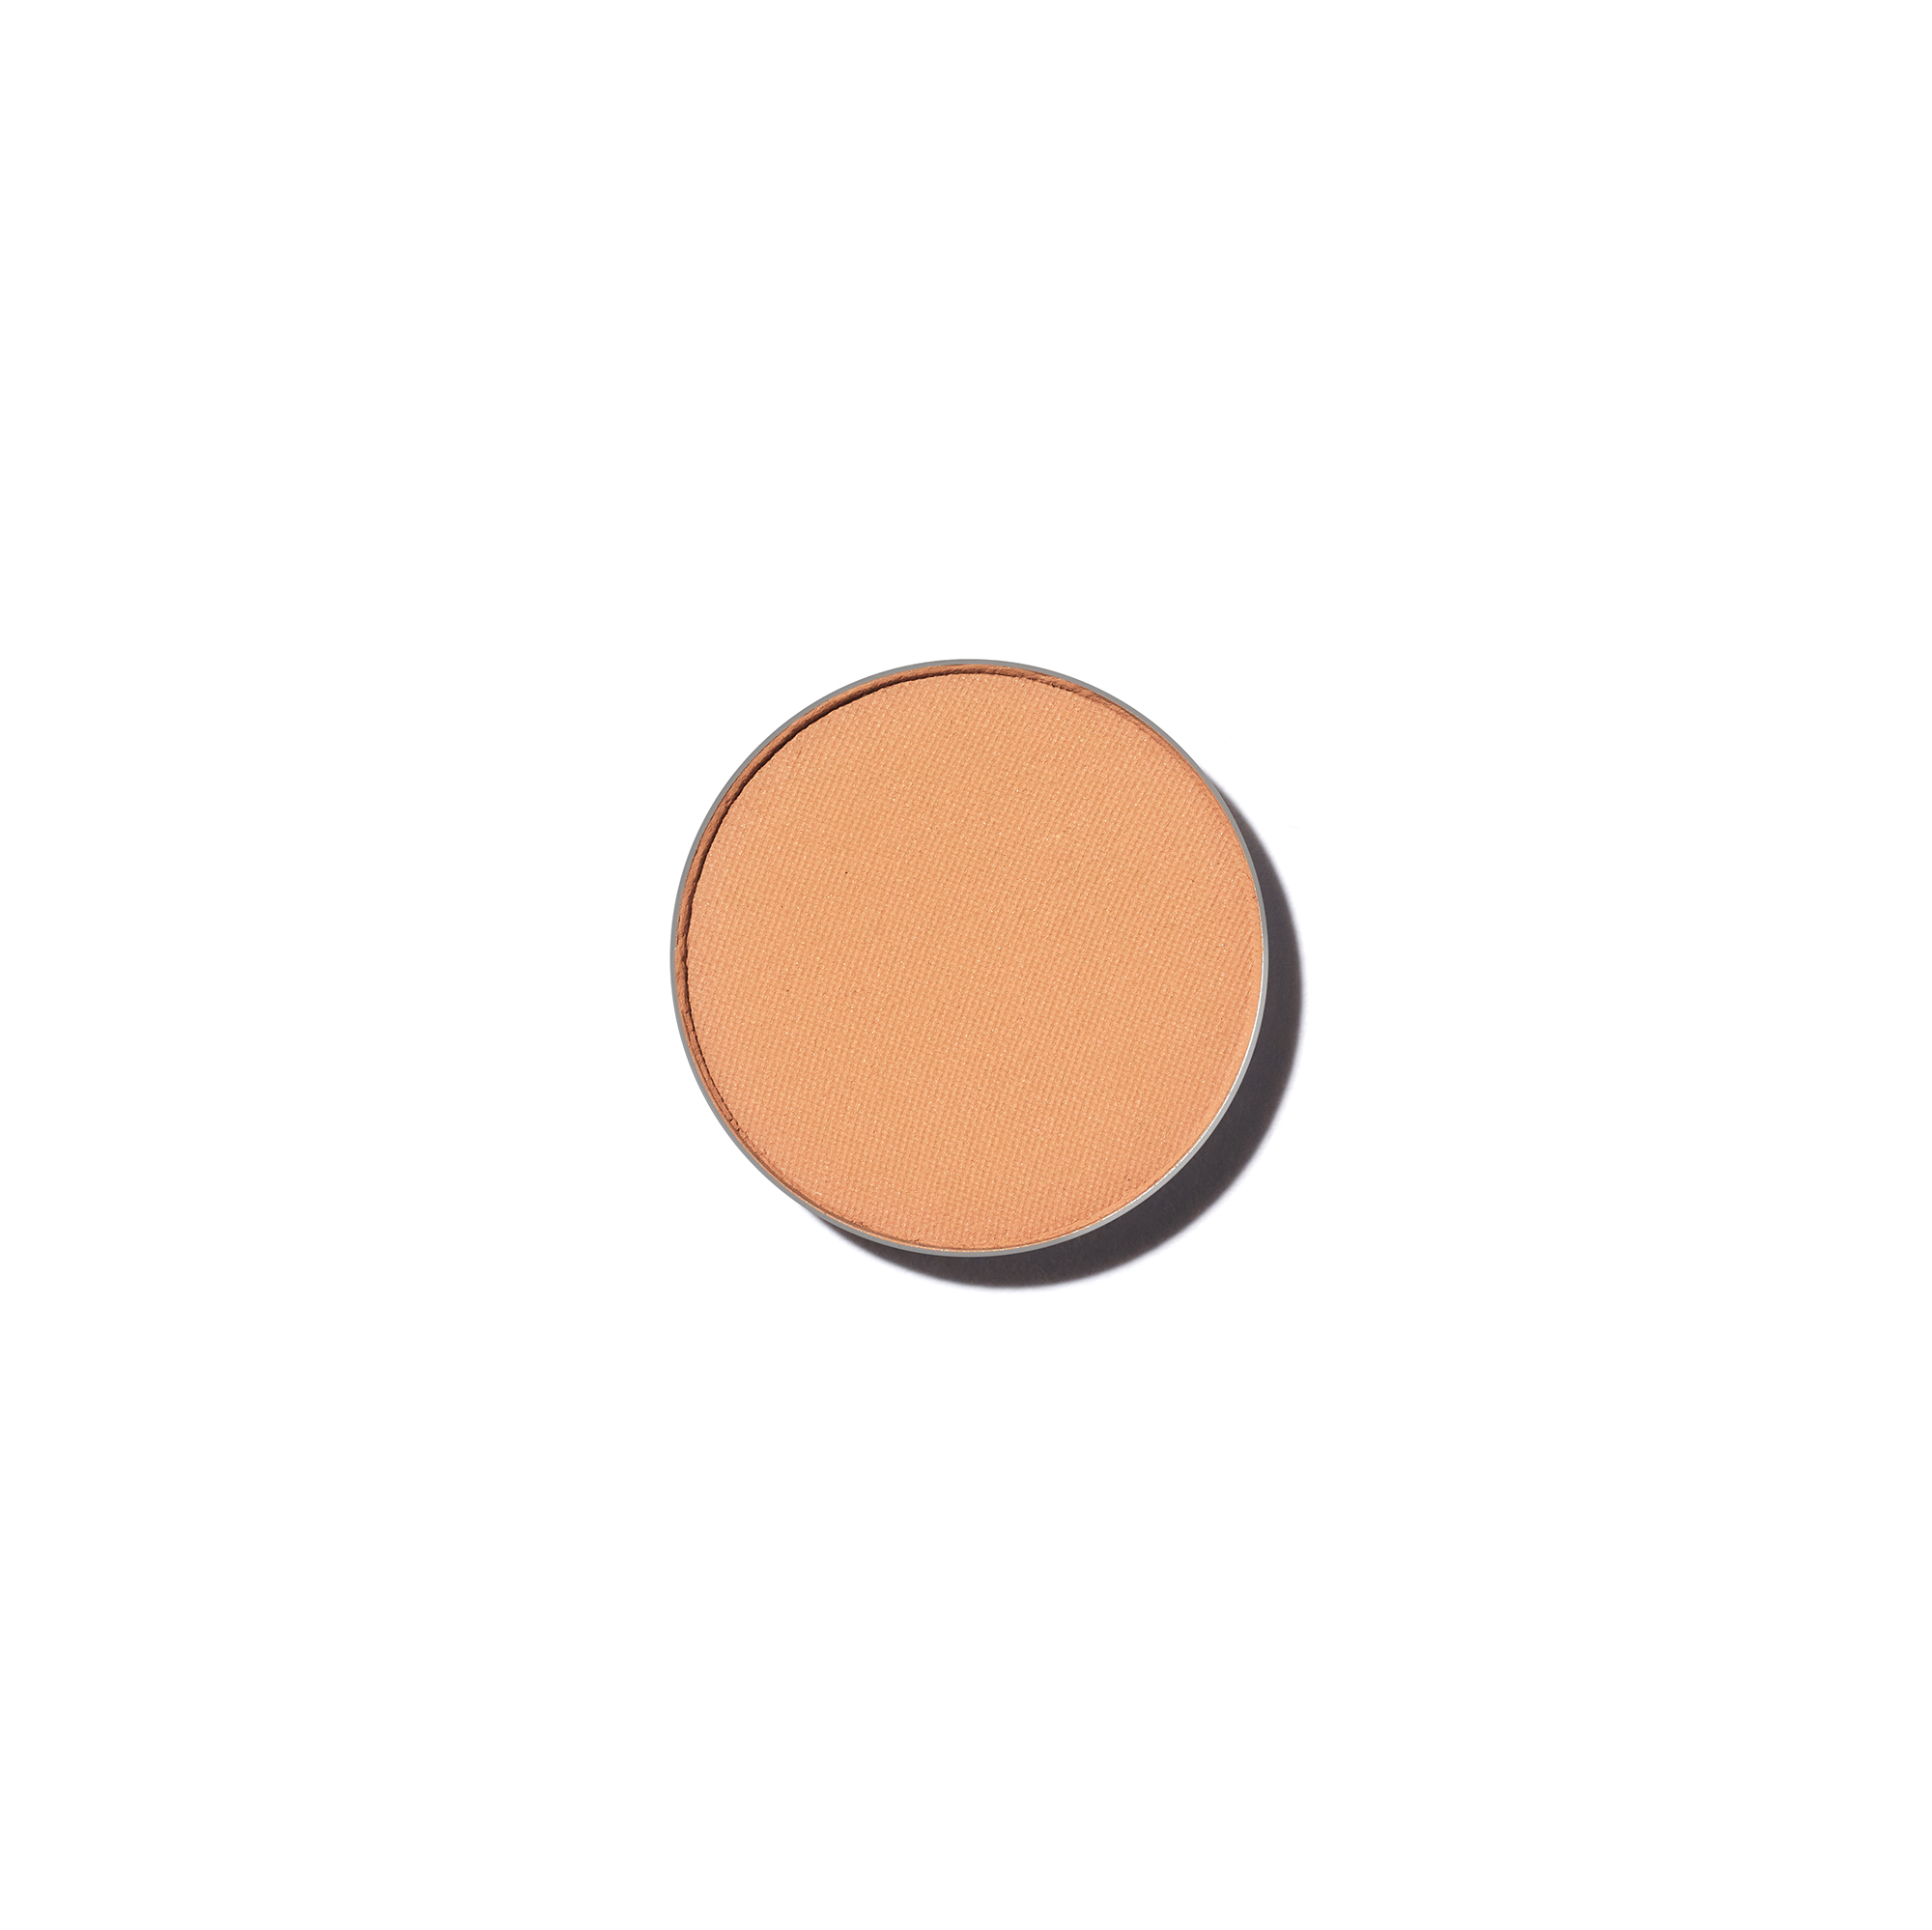 Eyeshadow Singles - Orange Soda